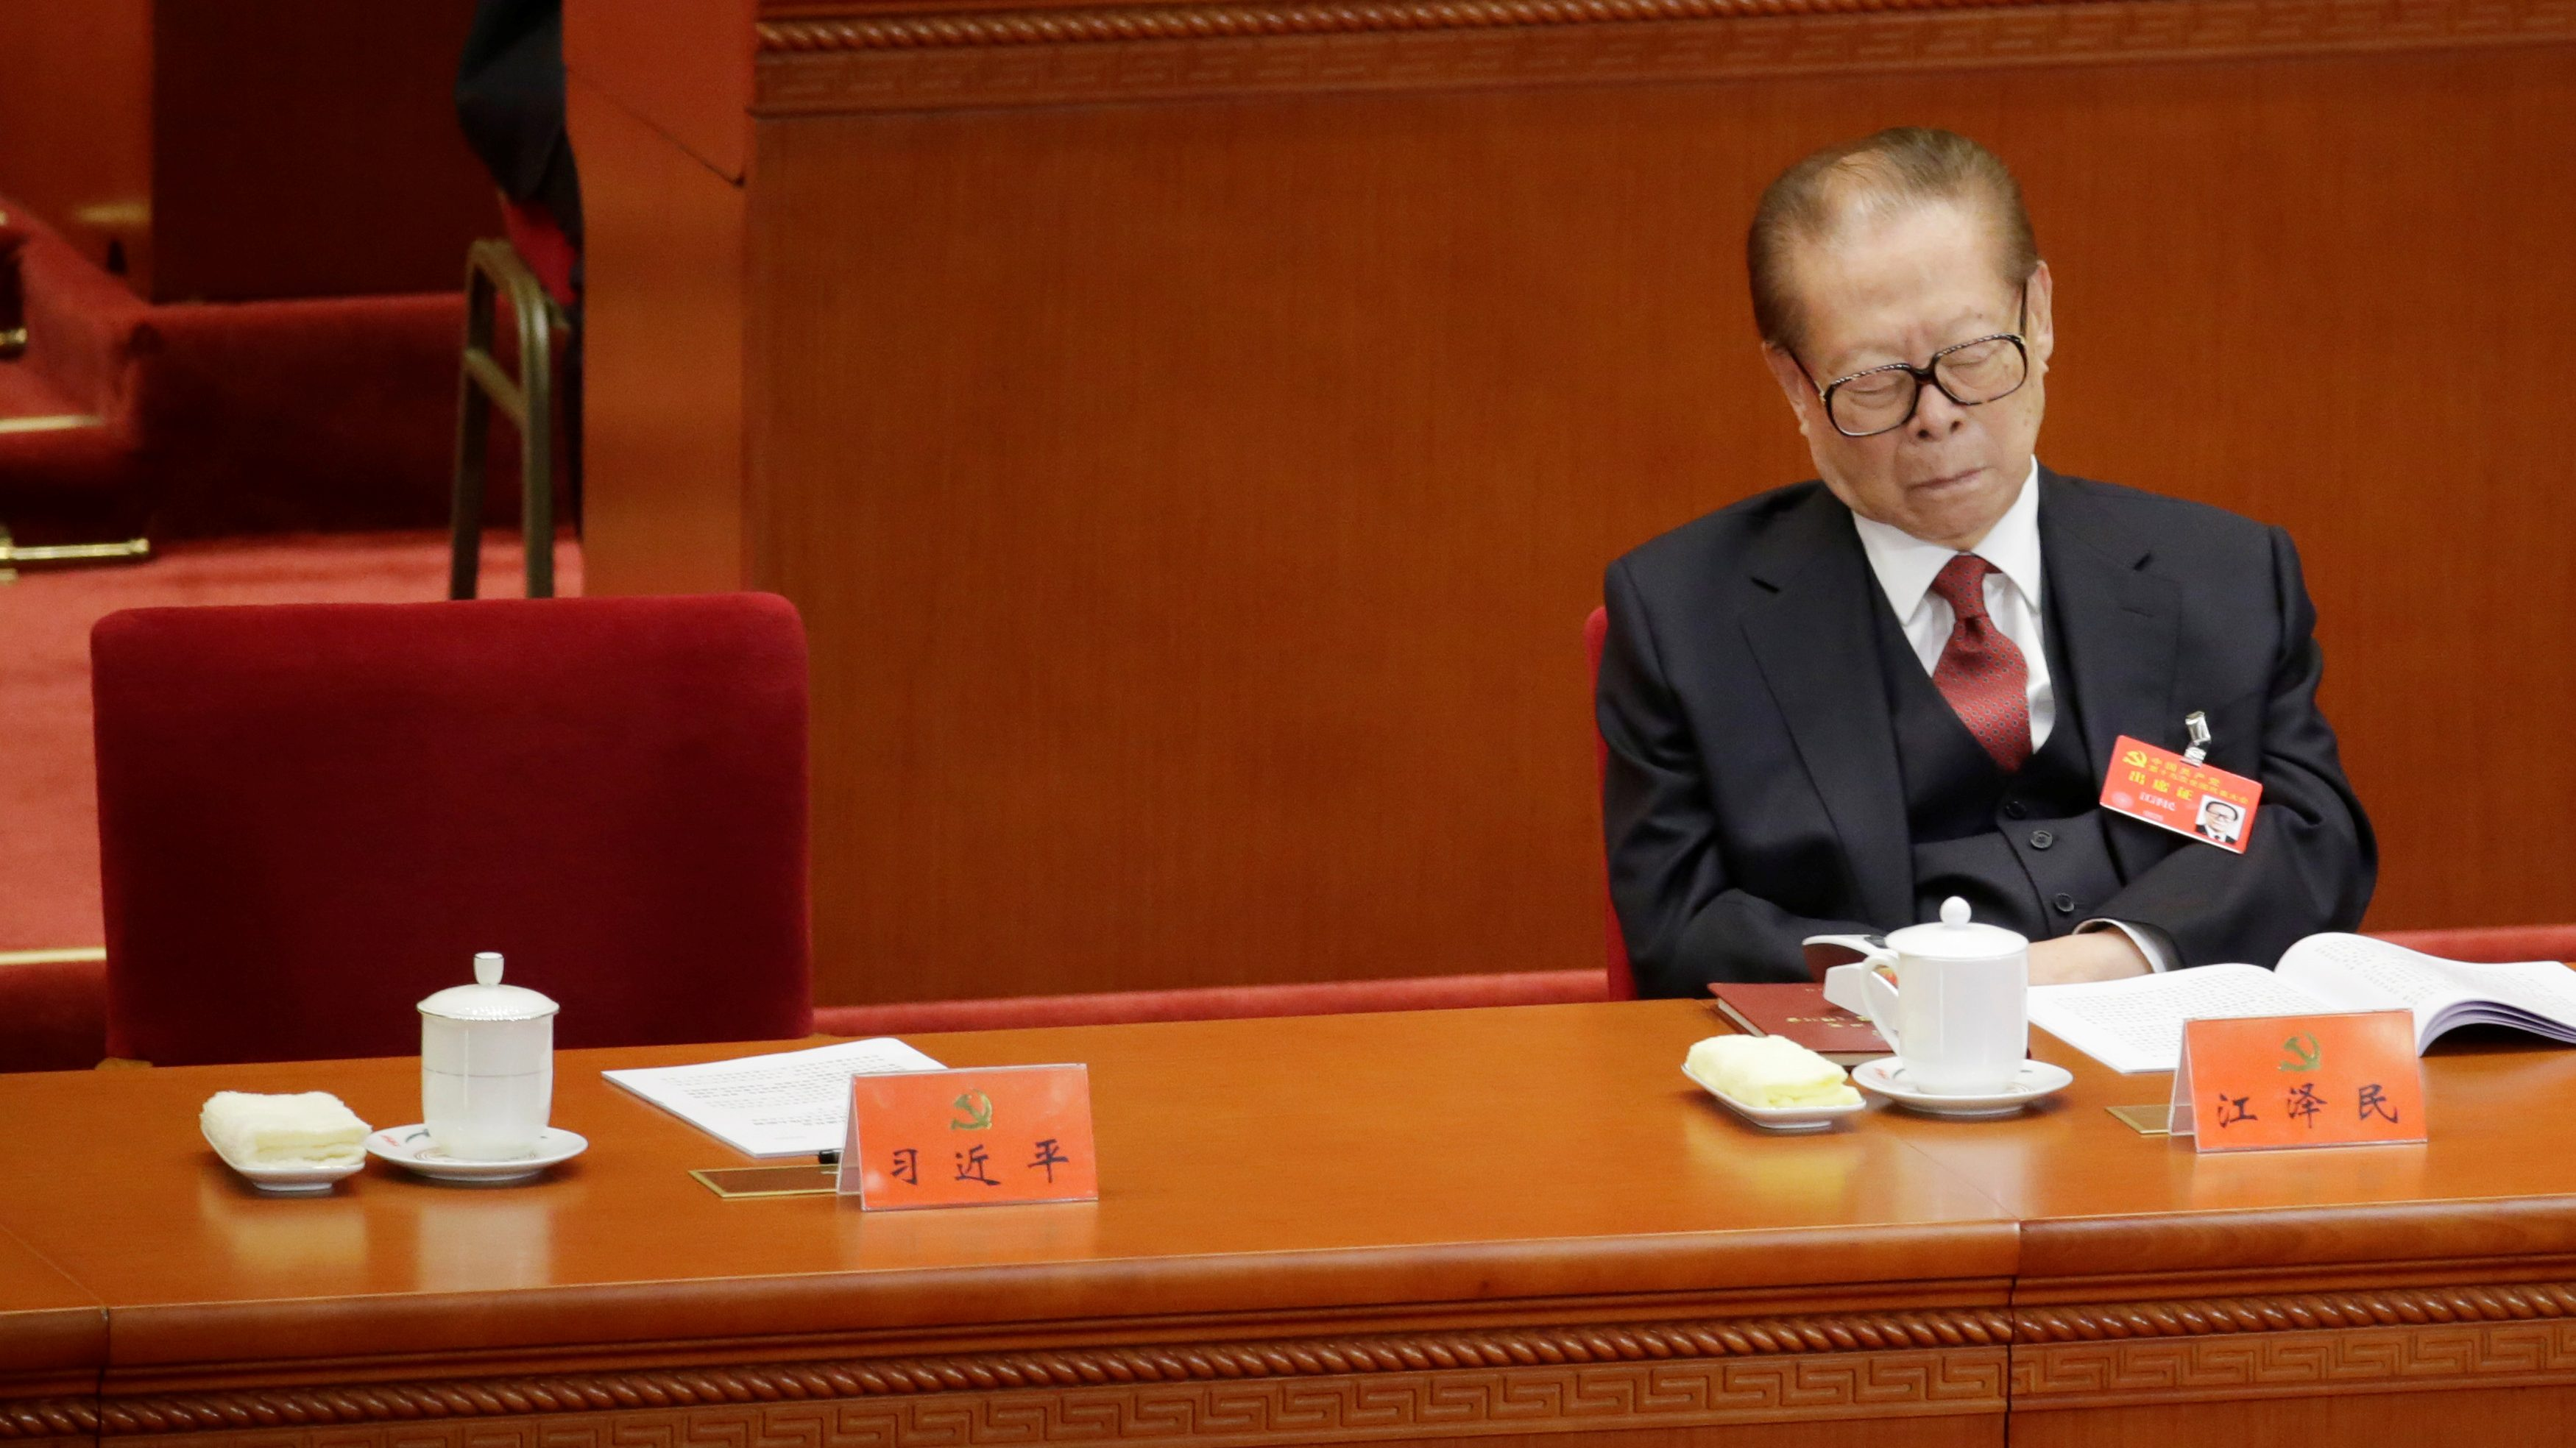 Former Chinese President Jiang Zemin takes a nap as Chinese President Xi Jinping (not pictured) delivers his speech during the opening session of the 19th National Congress of the Communist Party of China at the Great Hall of the People in Beijing, China October 18, 2017.